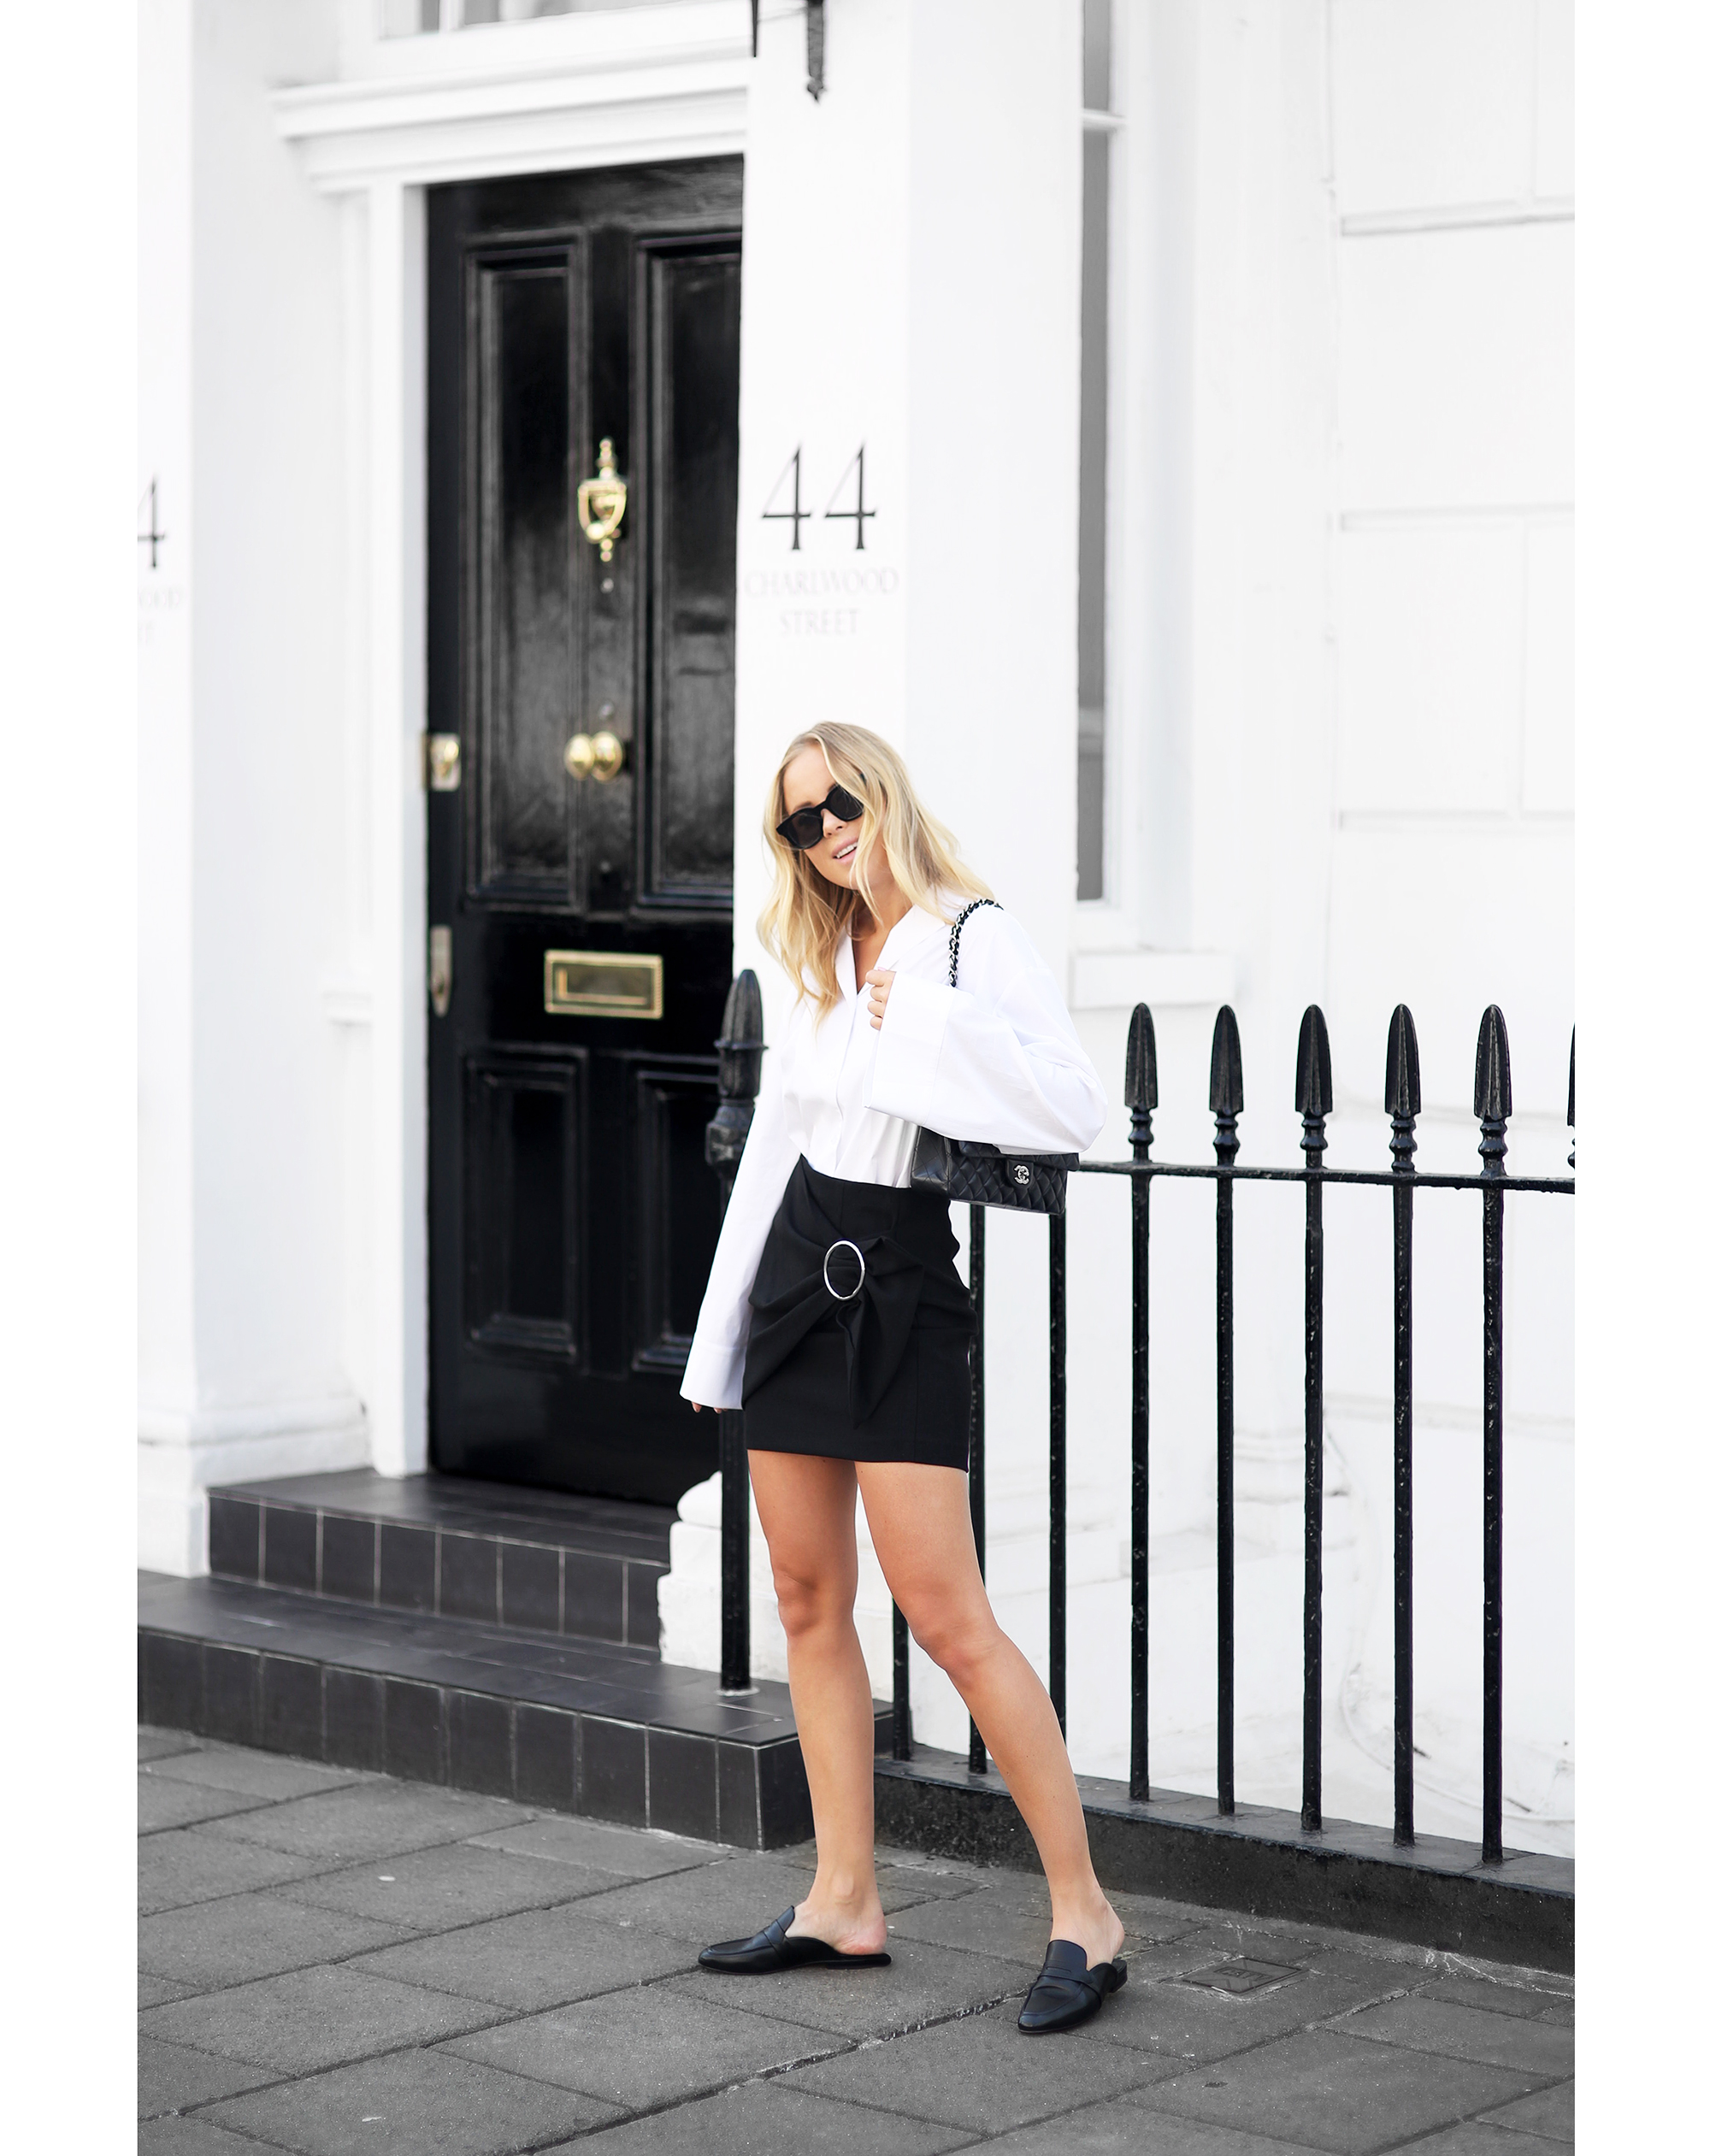 Victoria Tornegren is looking ultra sleek in this black and white outfit consisting of a bow front skirt with metallic detailing and a bell sleeved white blouse. This style is sophisticated yet playful; perfect for sprucing up your work wardrobe! Bag: Chanel, Shirt: Front Row Shop, Loafers: Henry Kole, Skirt: Zara.